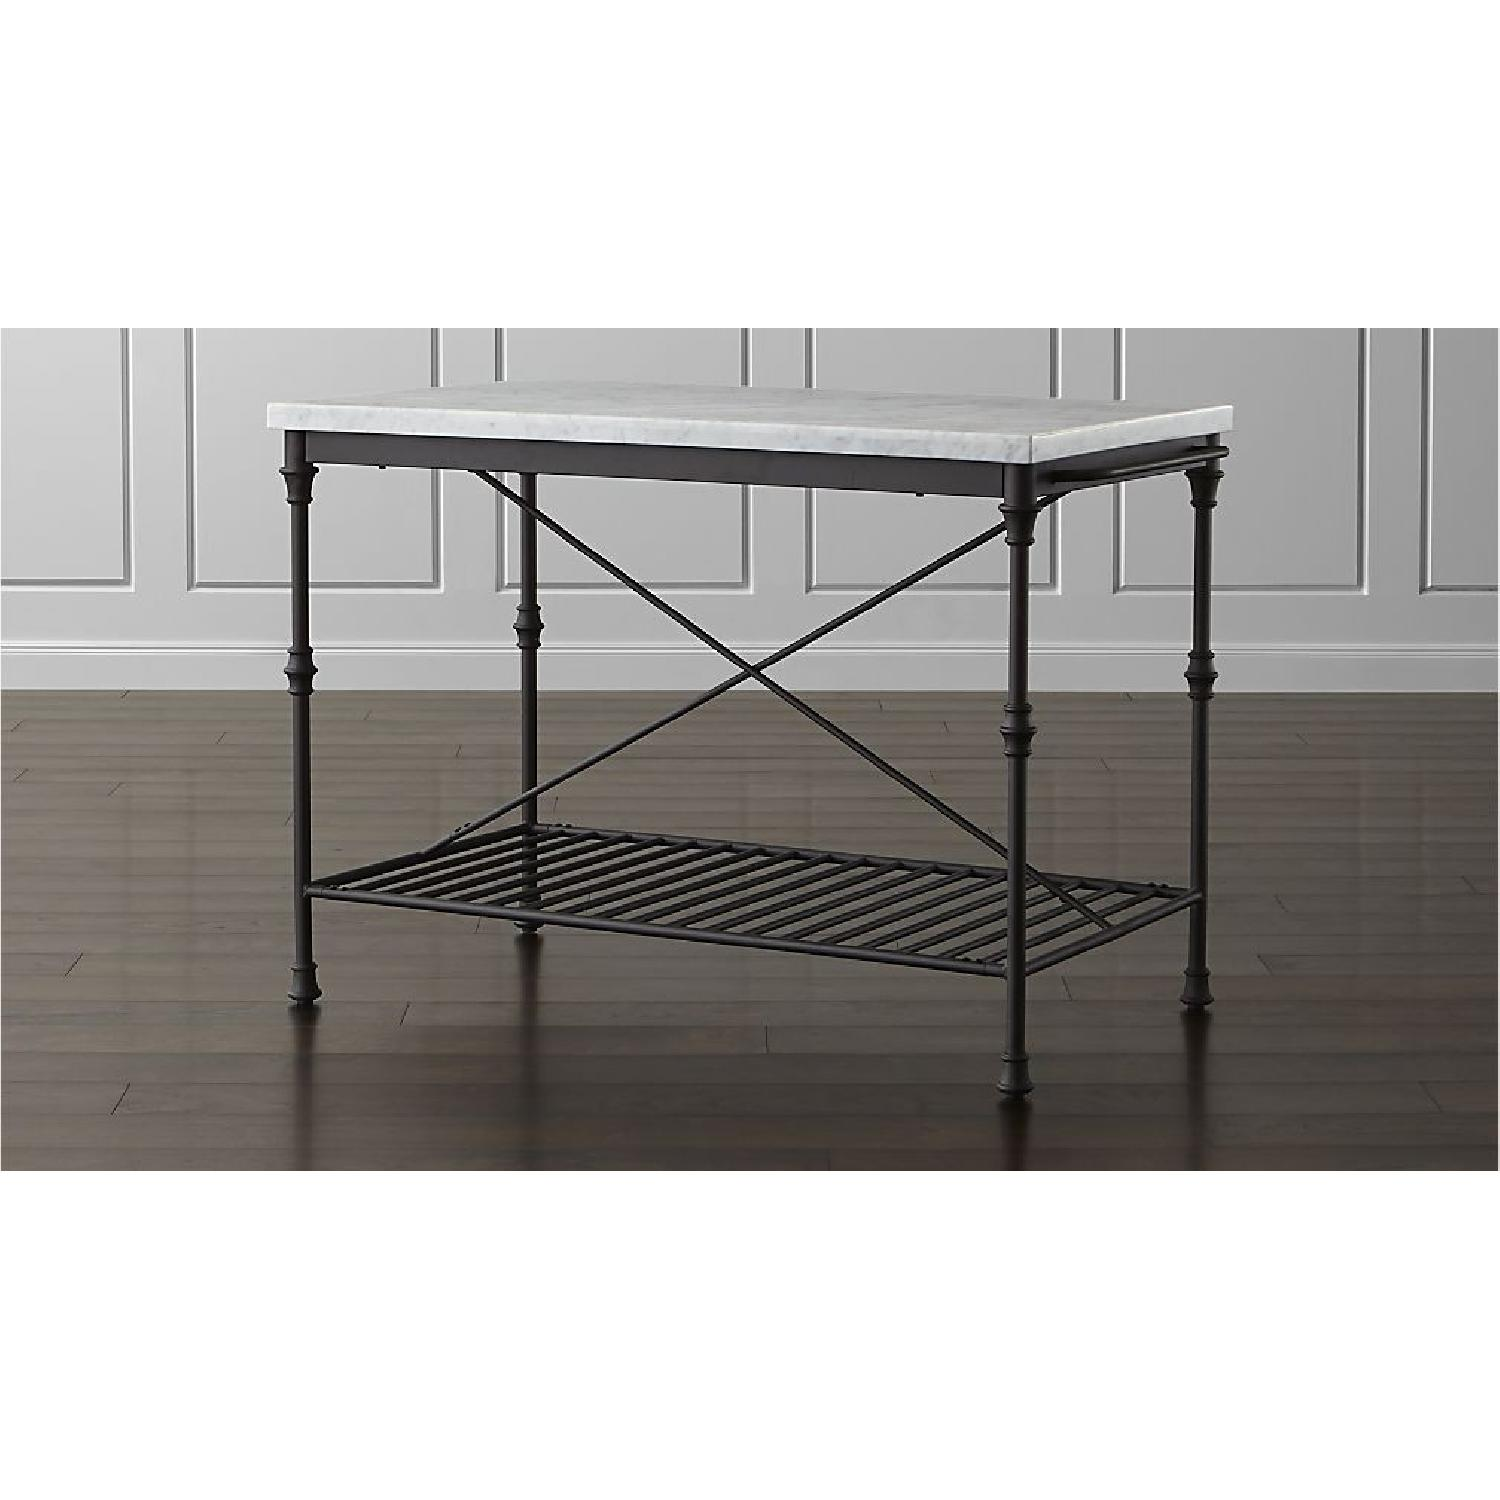 ... Crate U0026 Barrel French Style Kitchen Island/Dining Table 0 ...